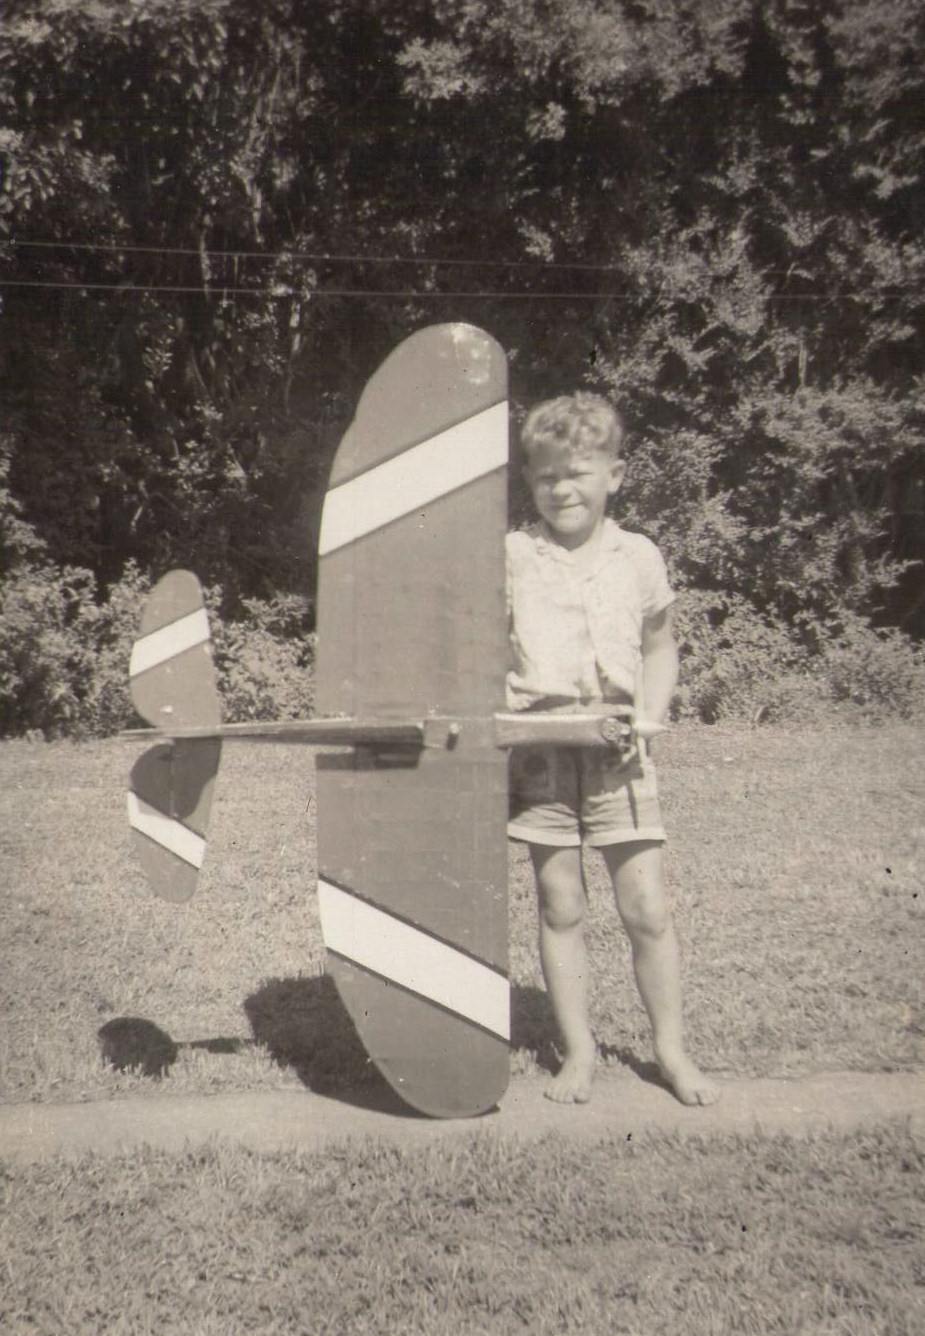 Ray Lind 1959 - born to fly